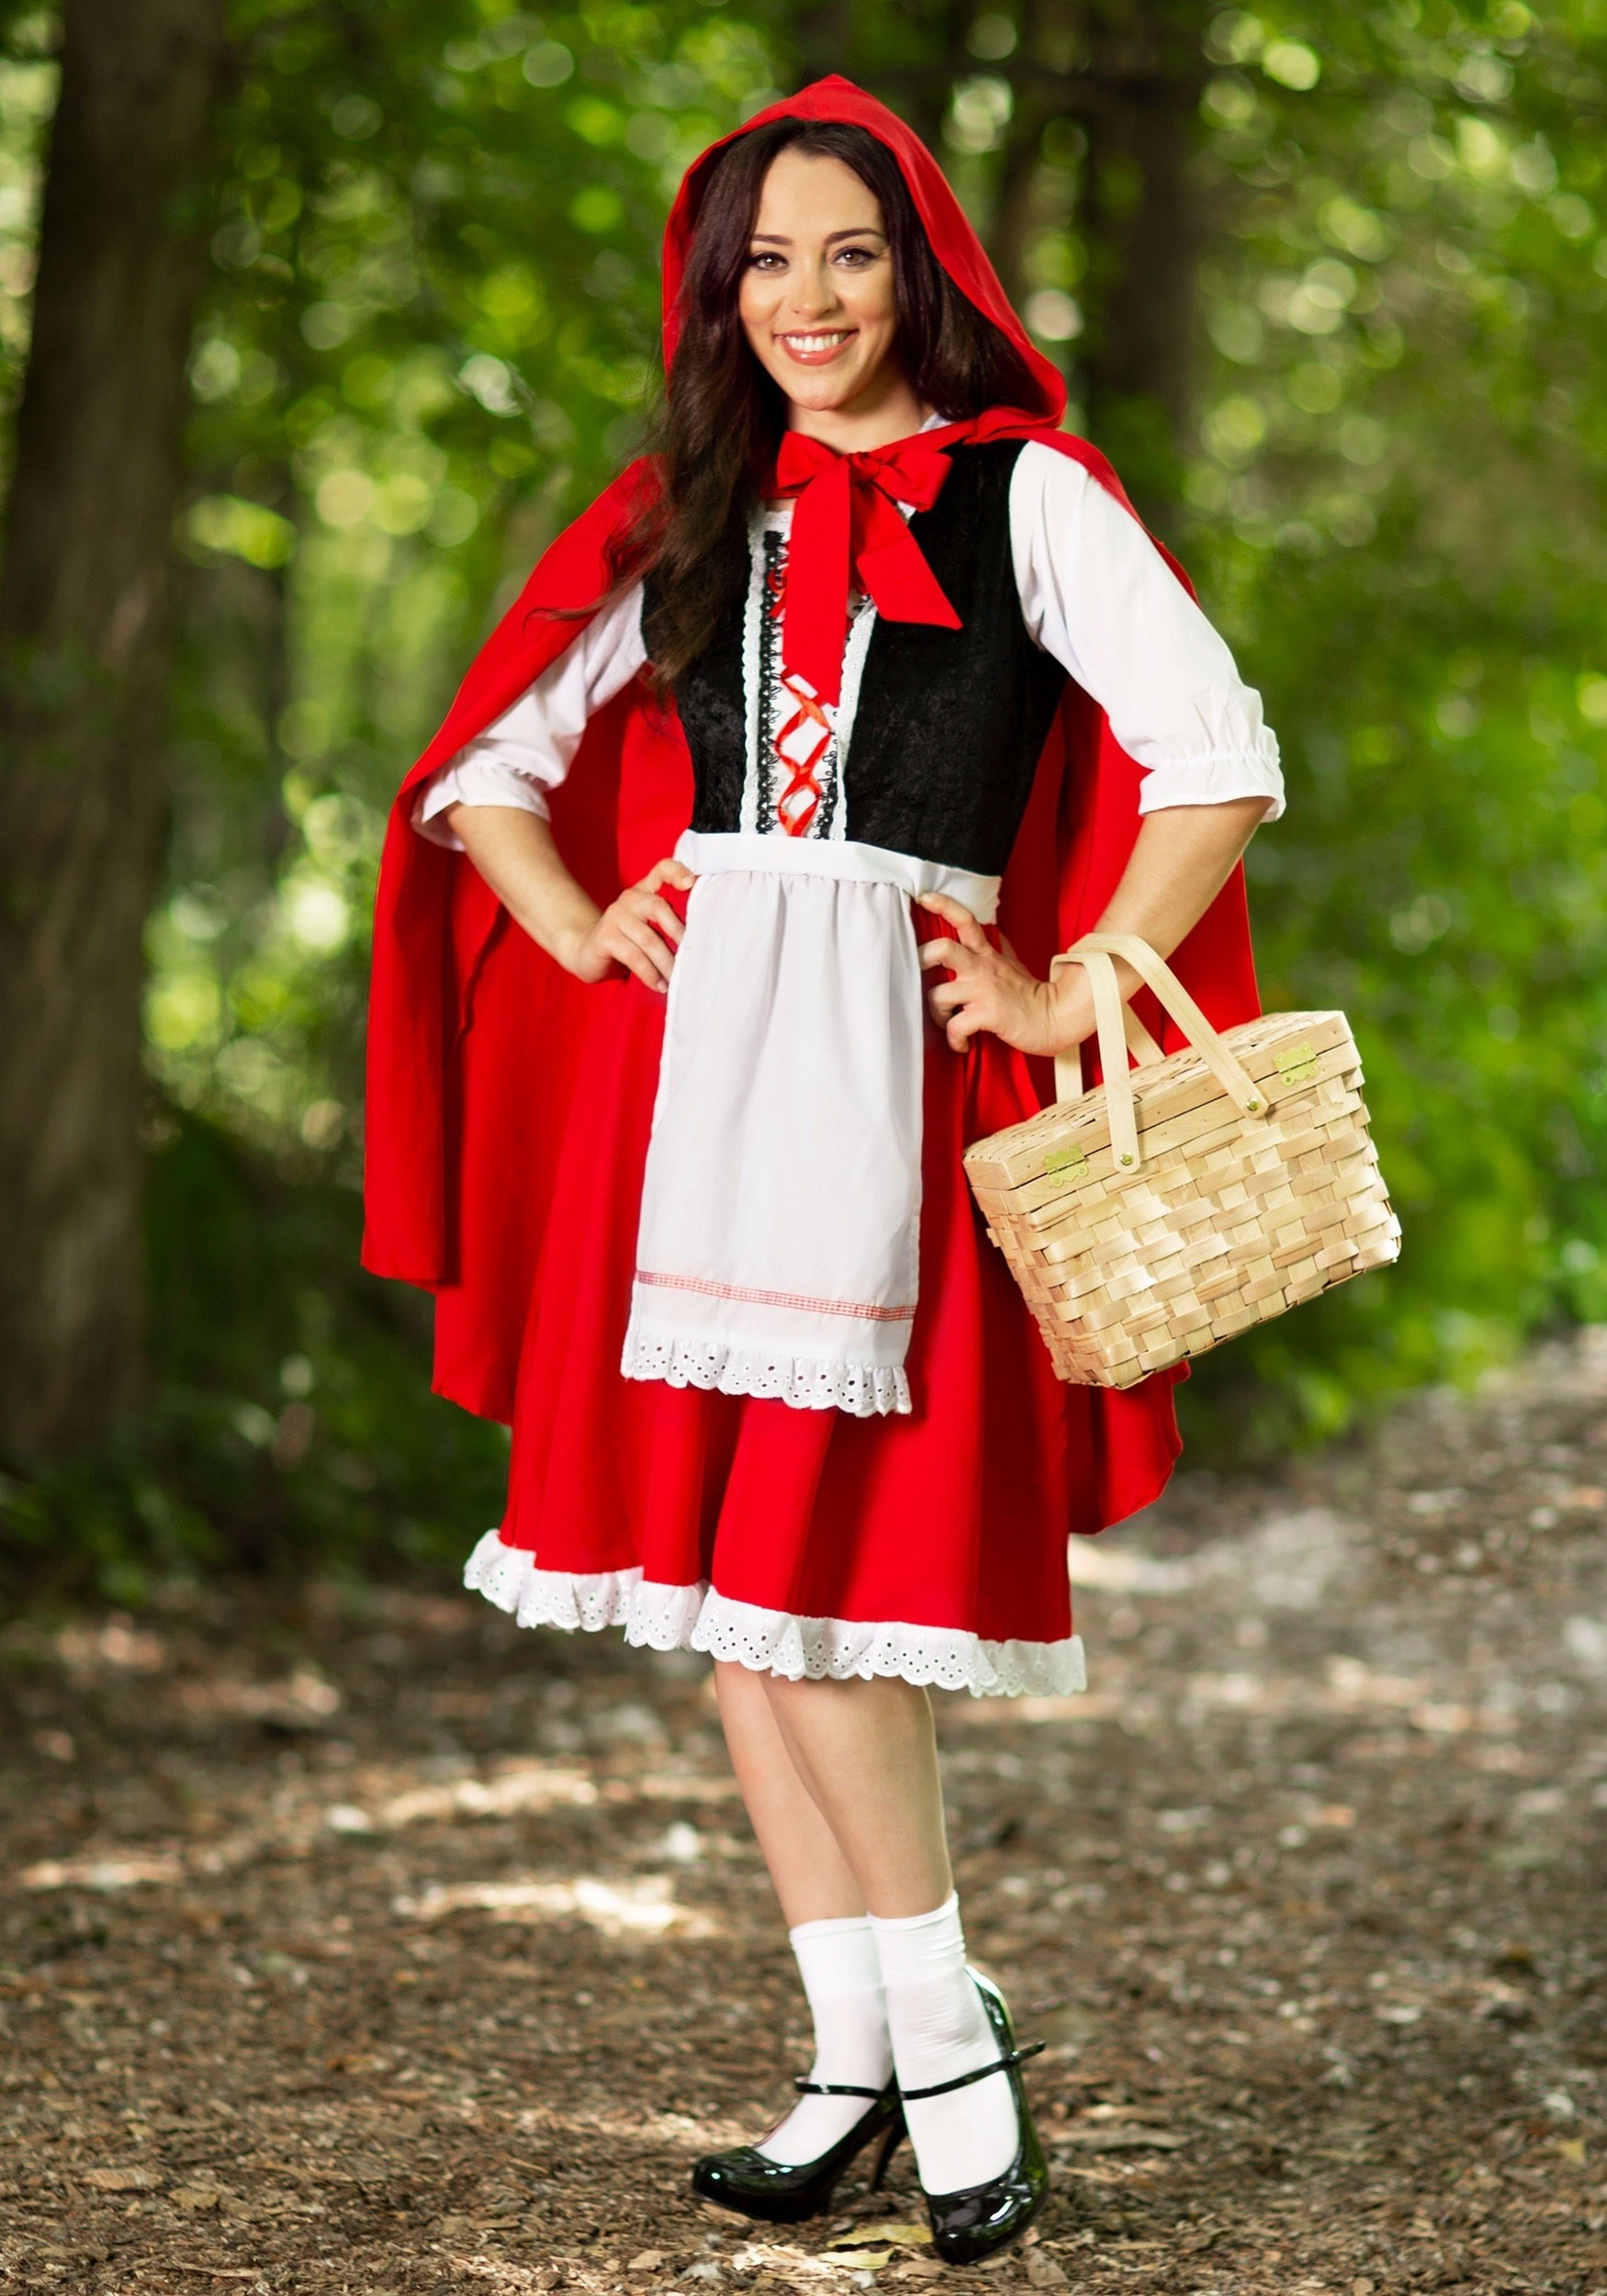 Womens Plus Size Red Riding Hood Costume-3180